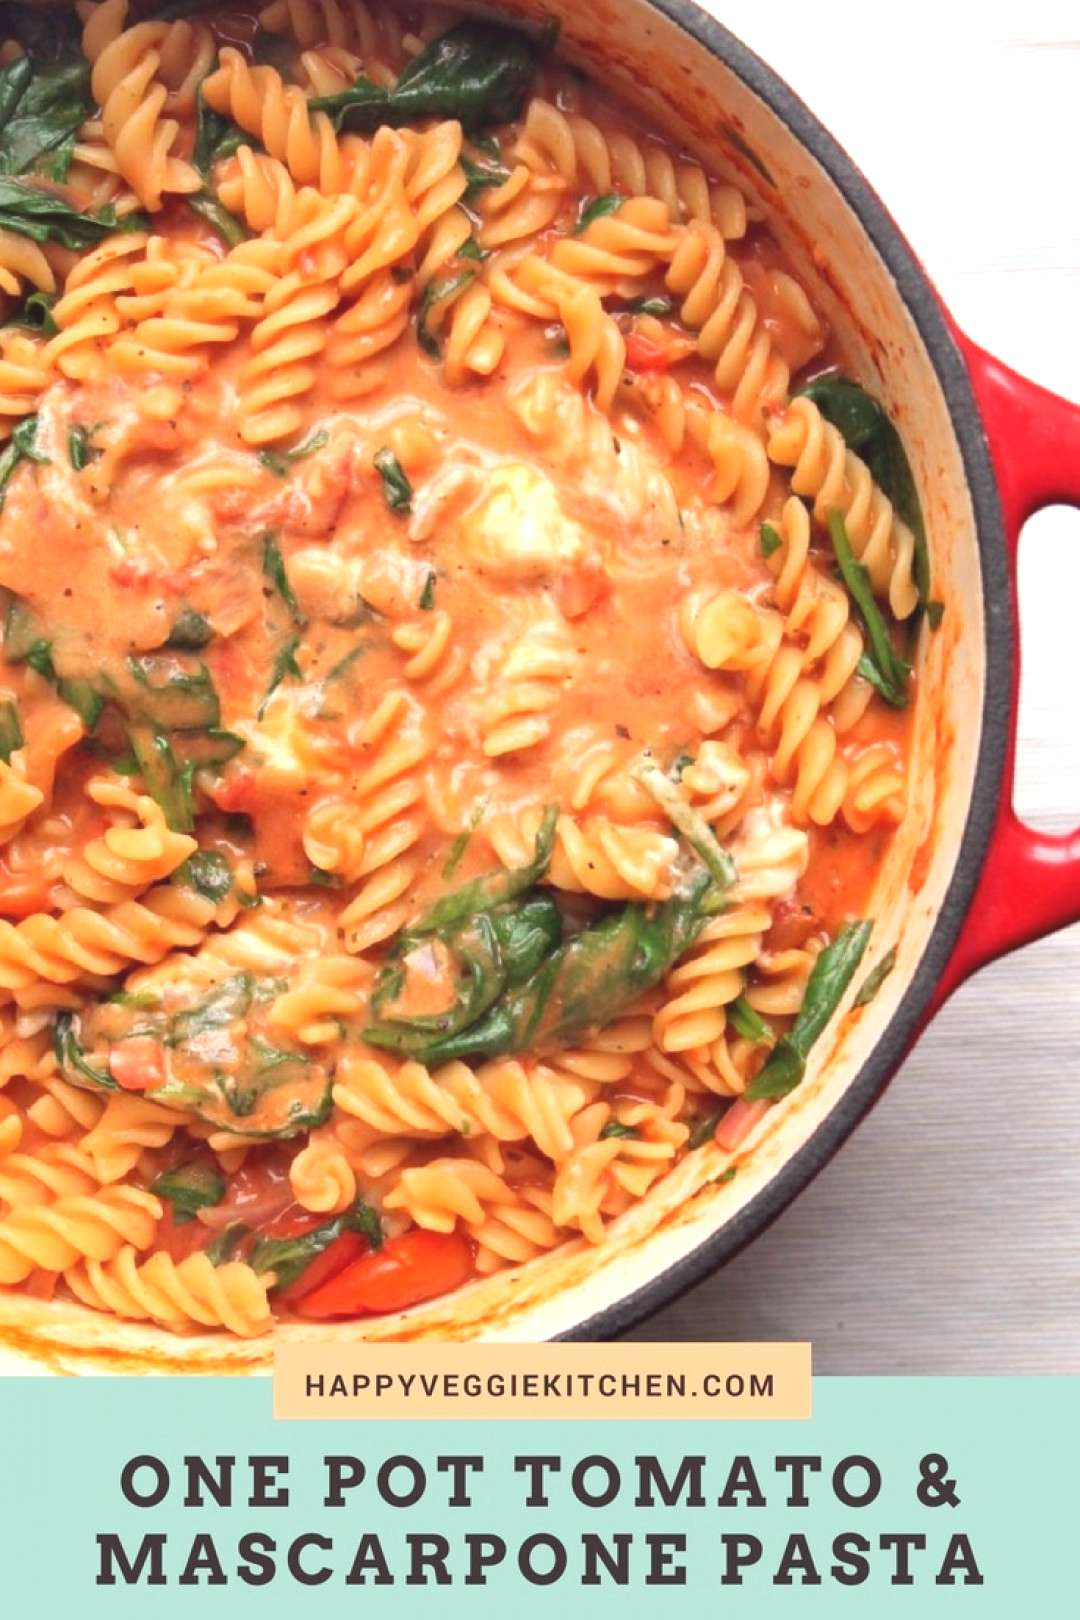 This one pot pasta has a luxurious tomato and mascarpone sauce and lots of fresh spinach. Its an e